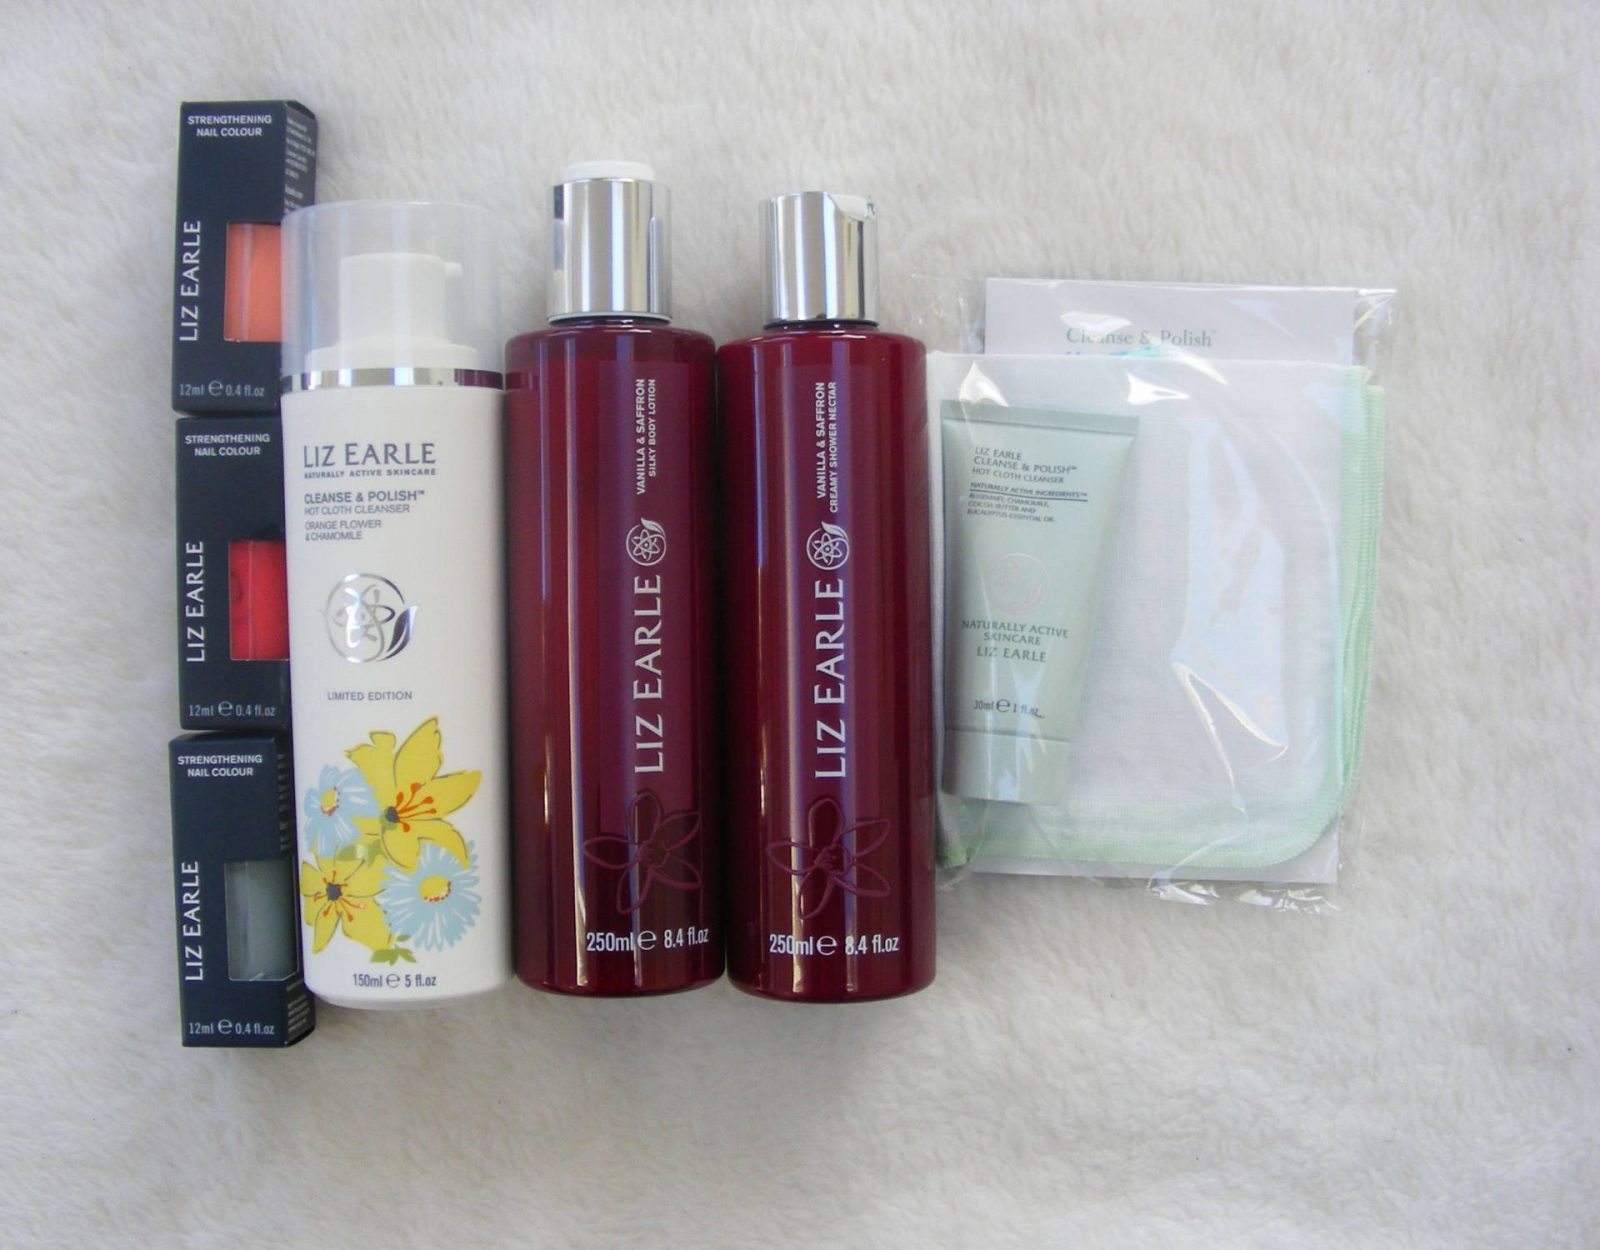 Liz Earle sale haul